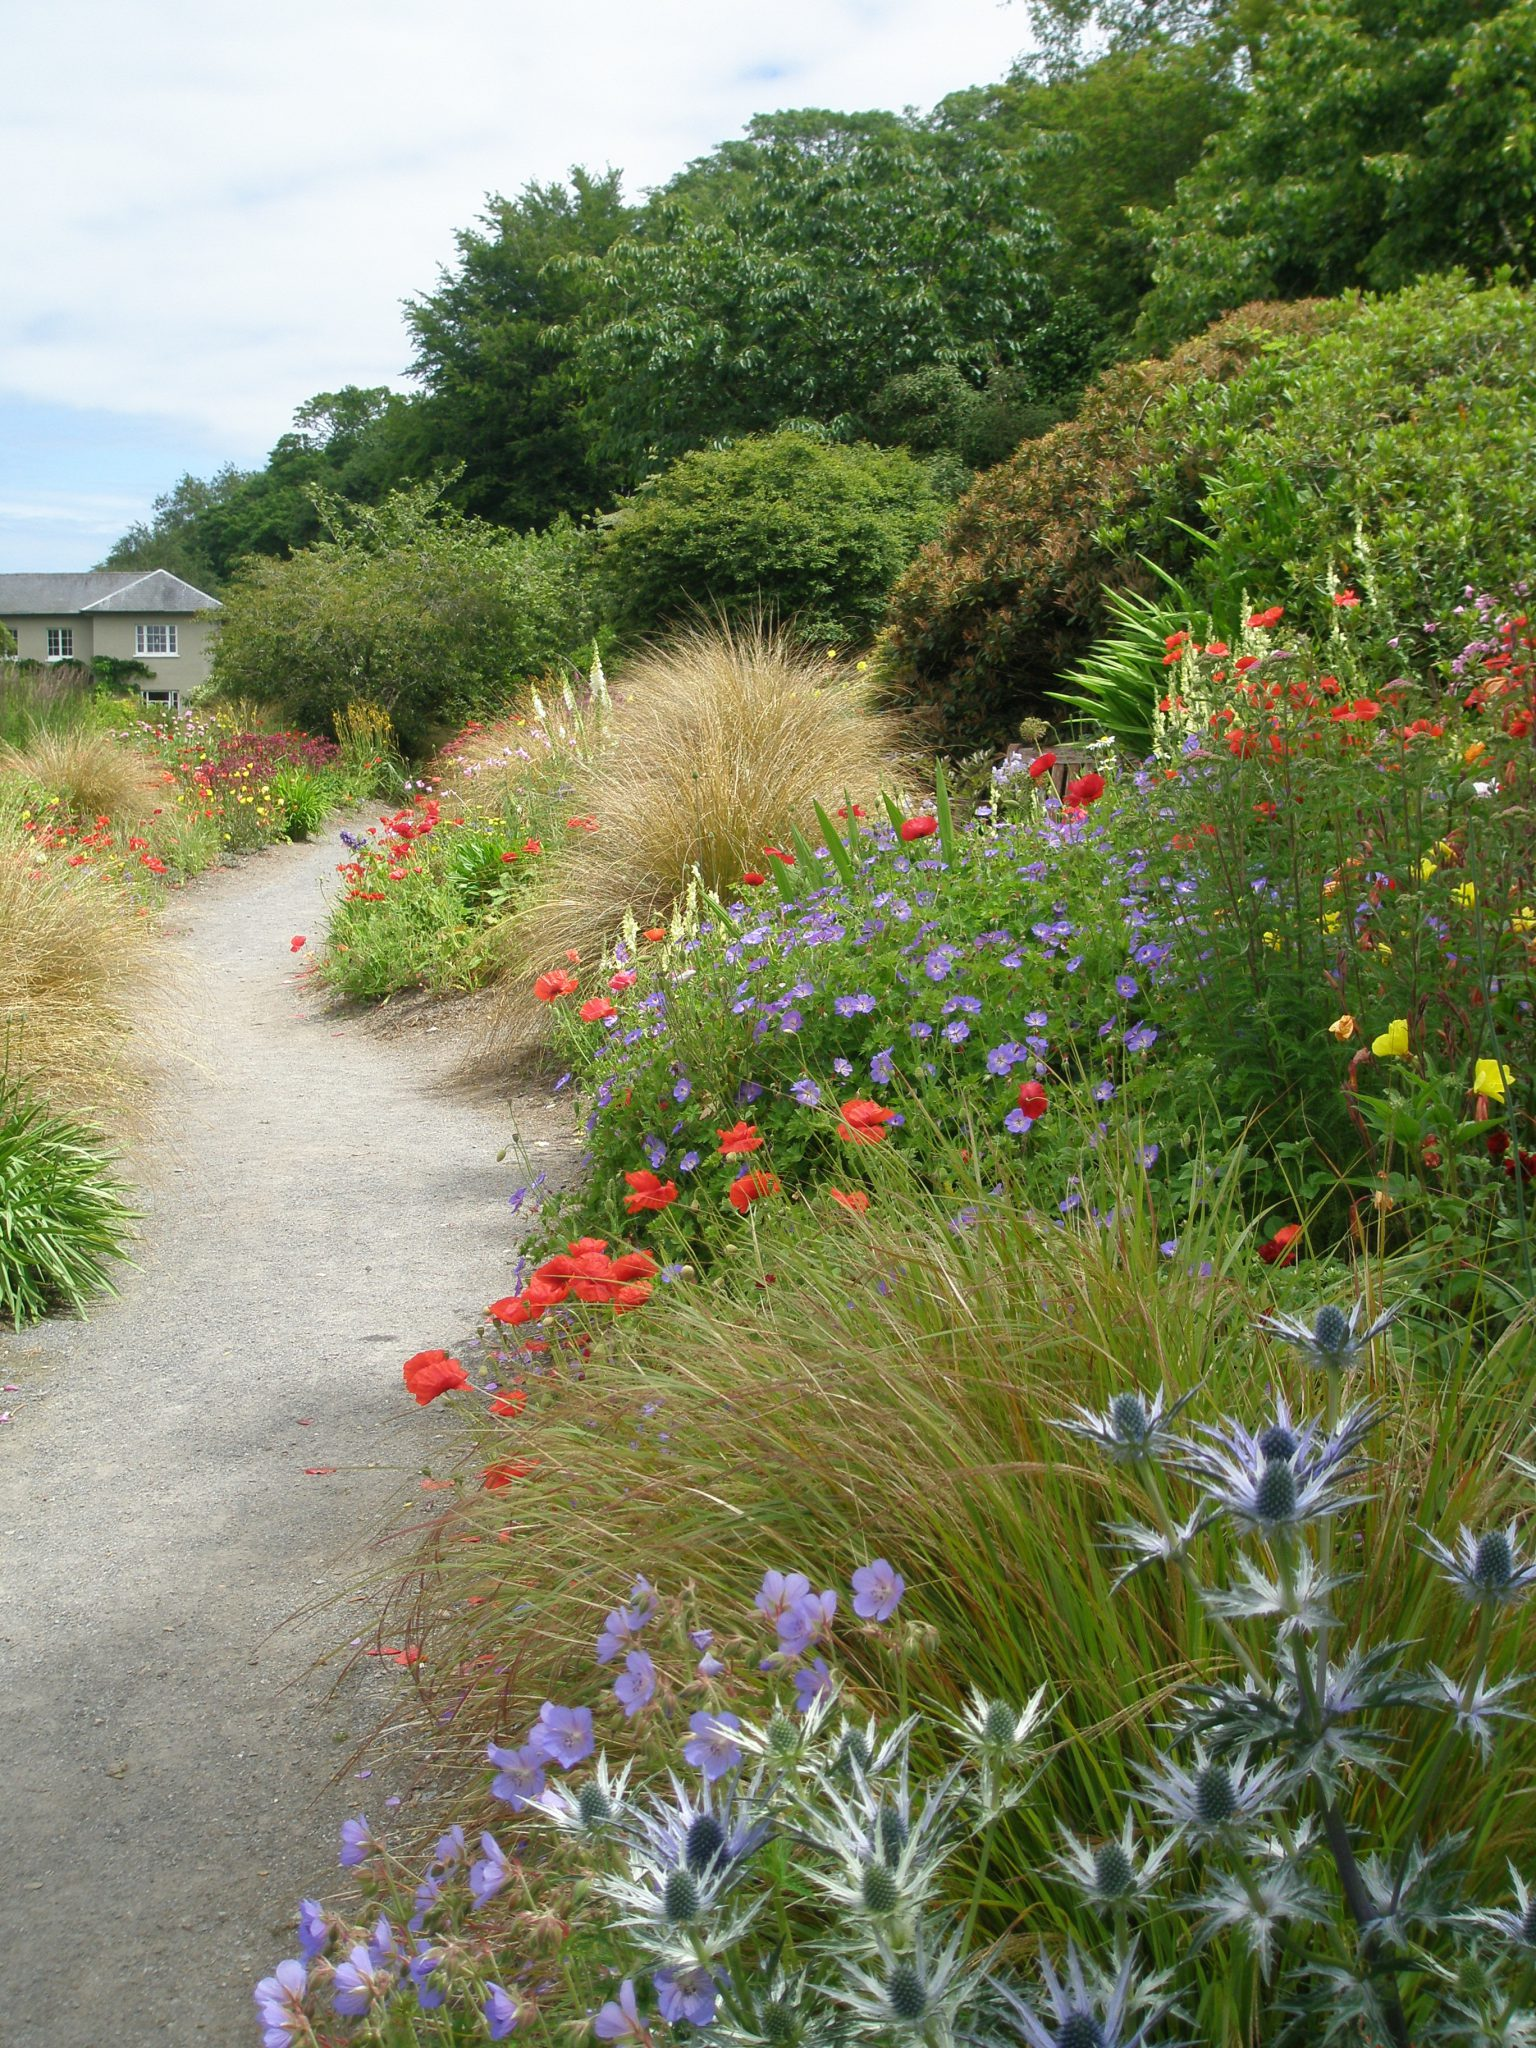 The central path through the South African Garden